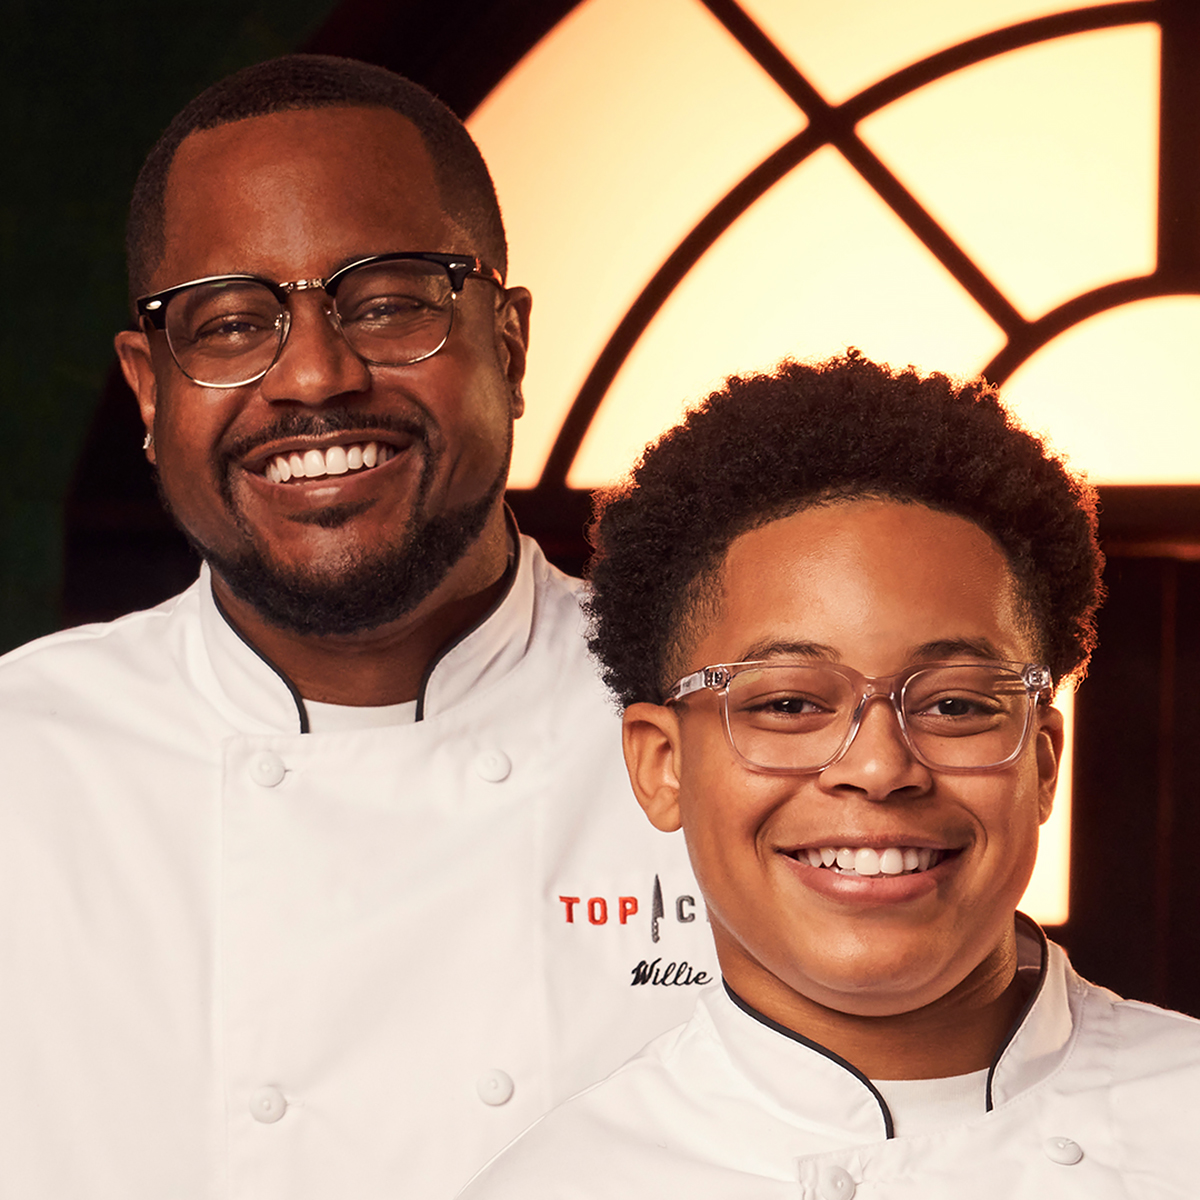 Top Chef Family Style contestants Willie and Khalil Blue